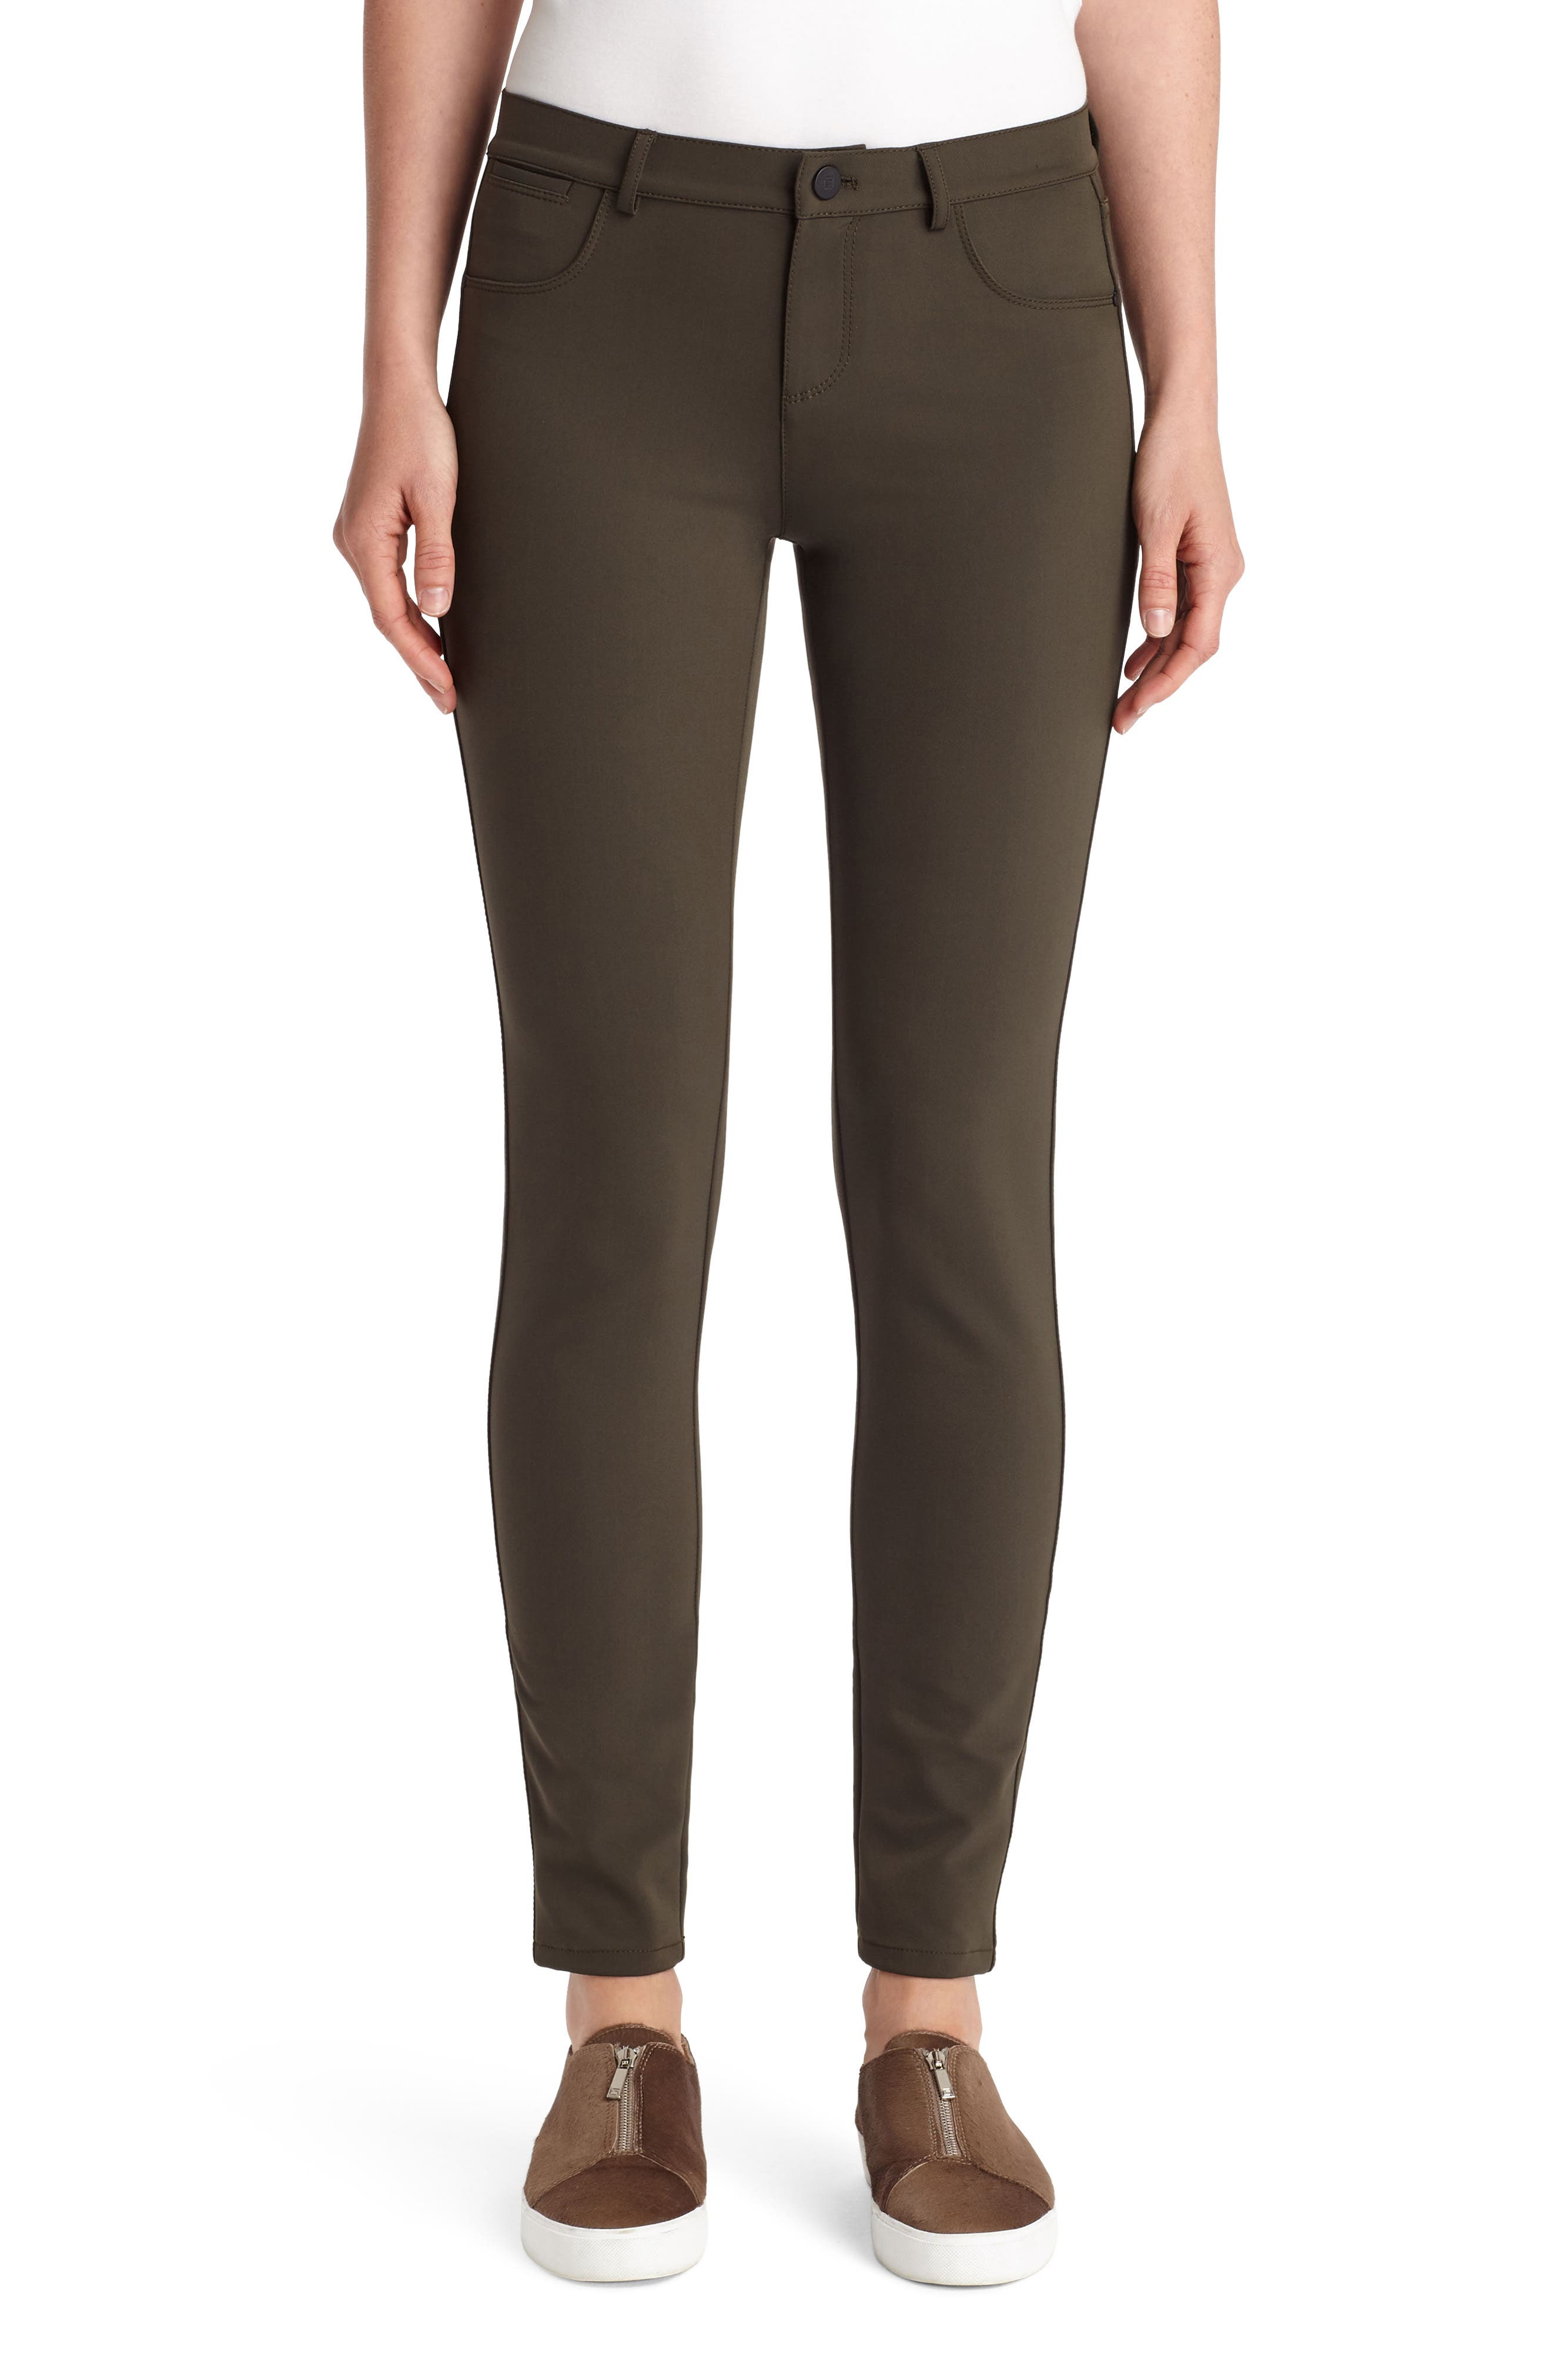 Alternate Image 1 Selected - Lafayette 148 New York Mercer Acclaimed Stretch Skinny Pants